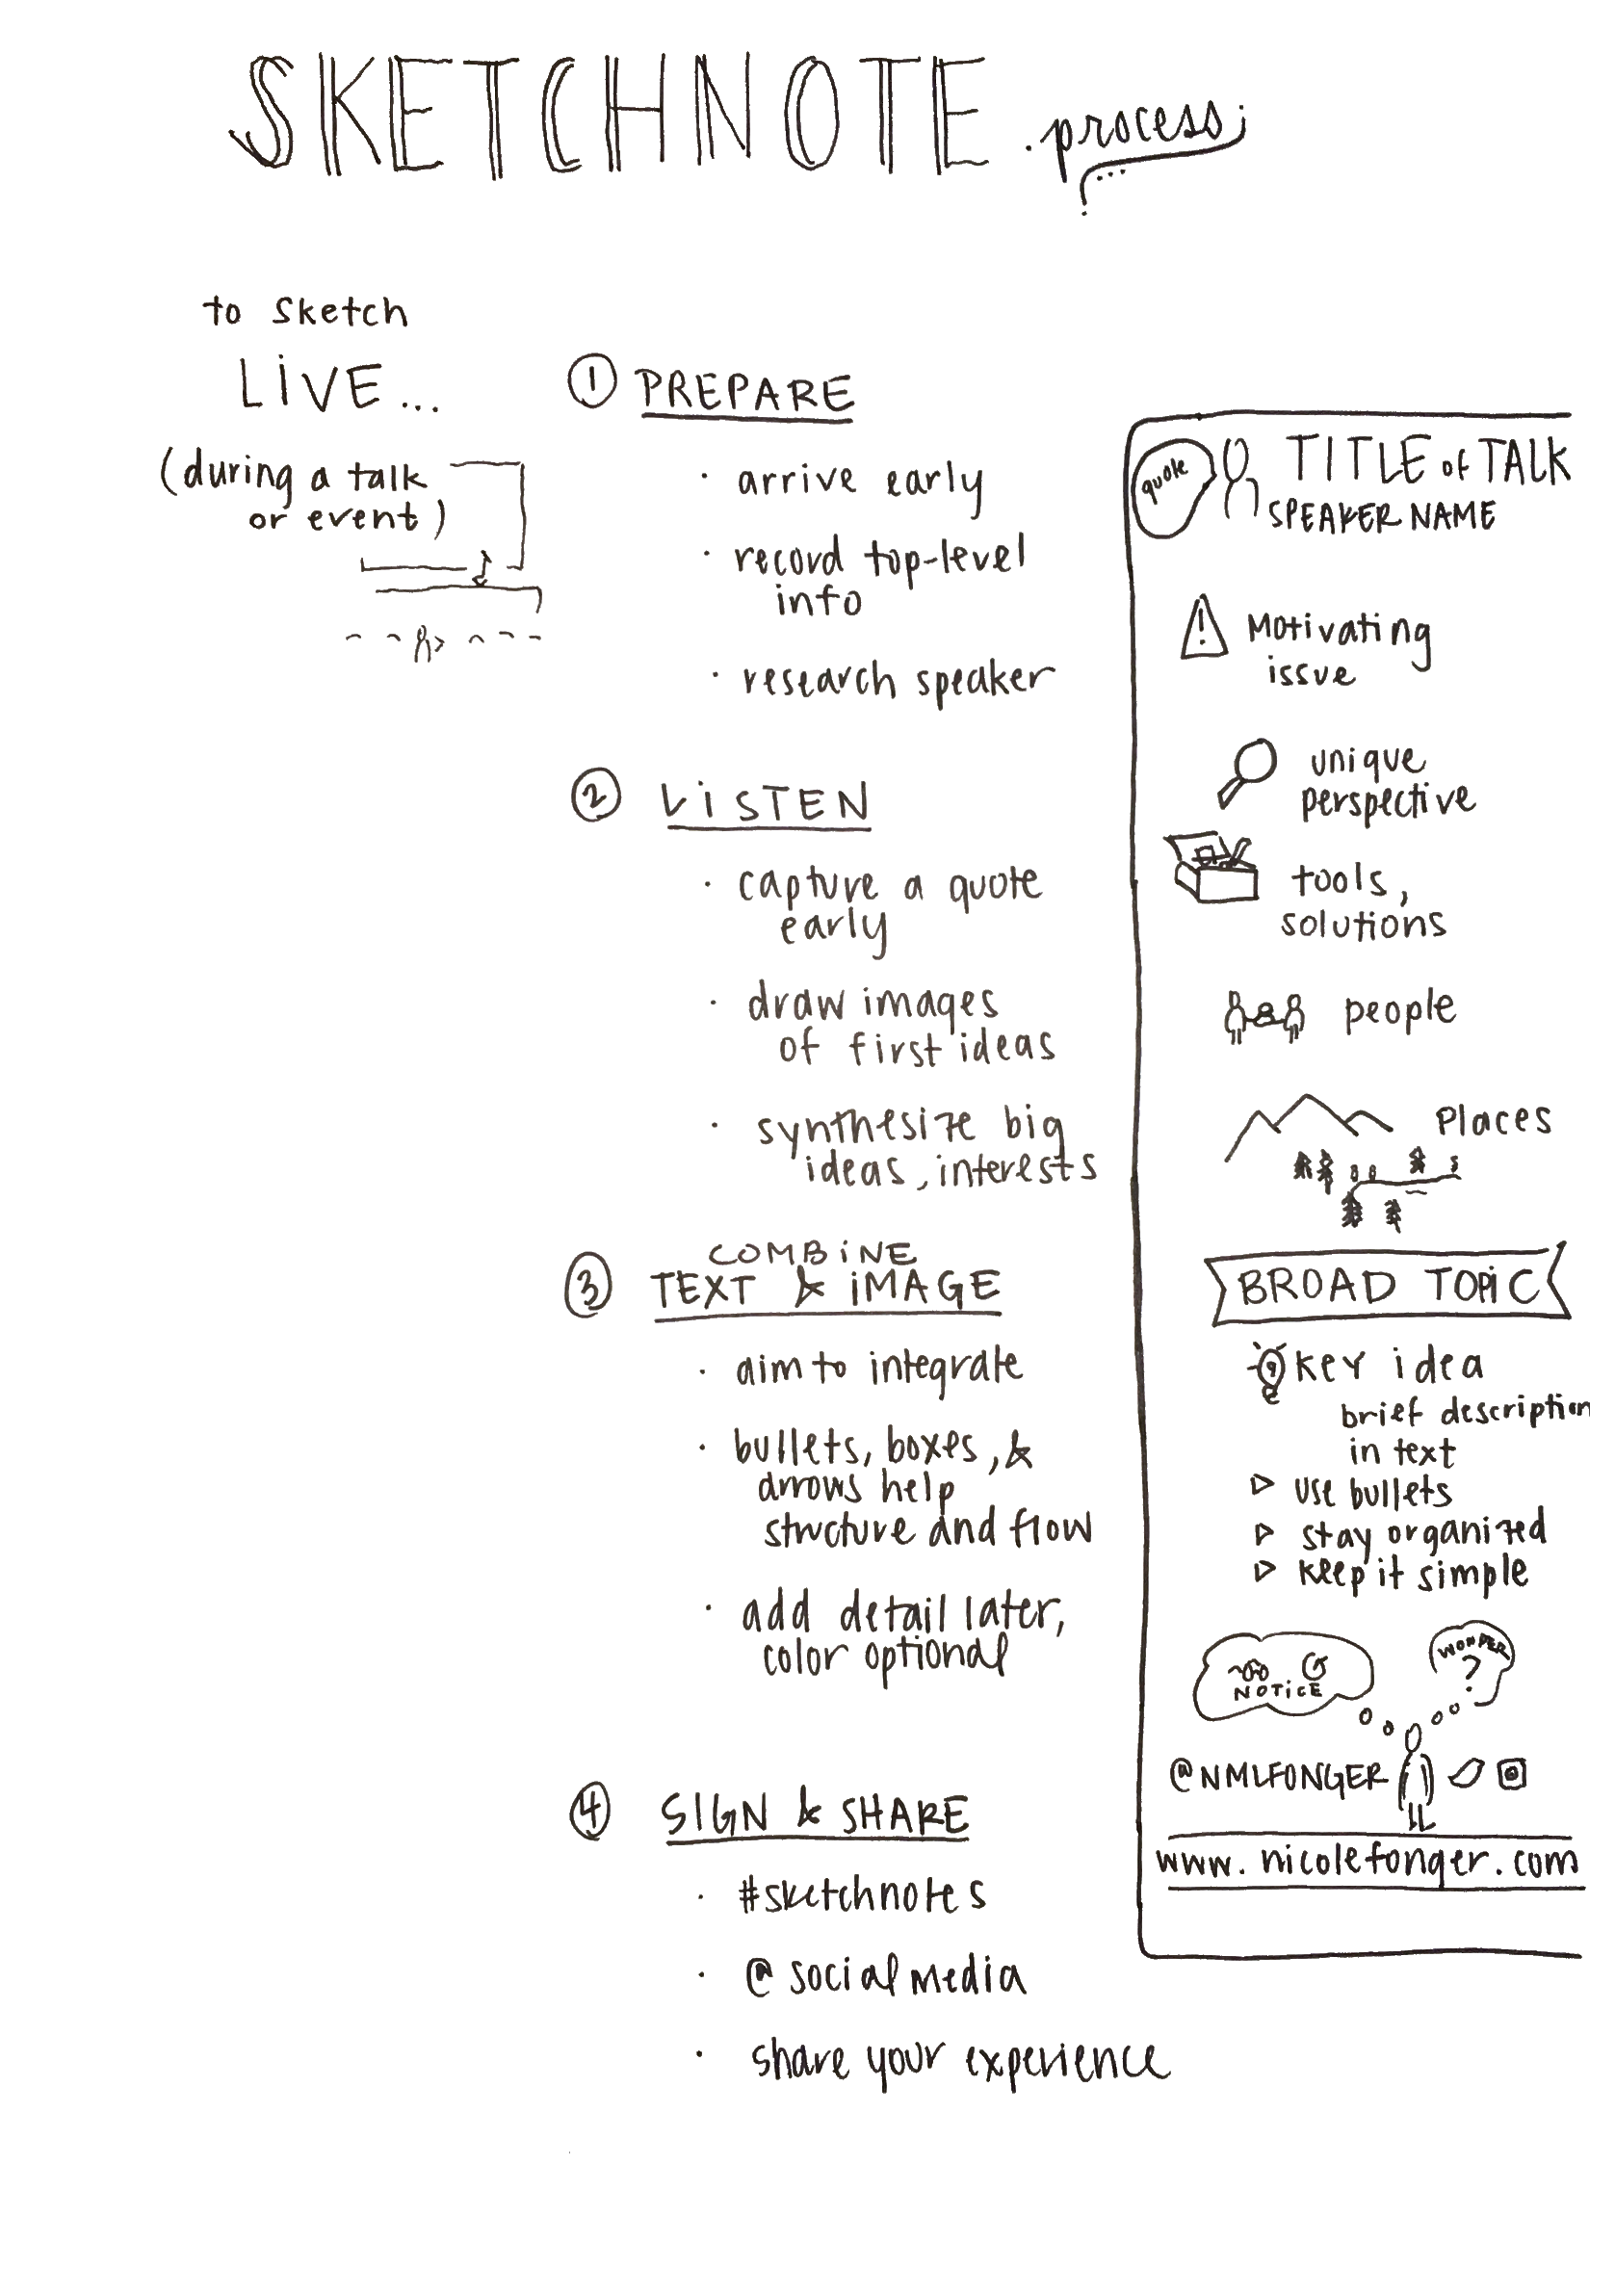 Learn the Sketchnote Process